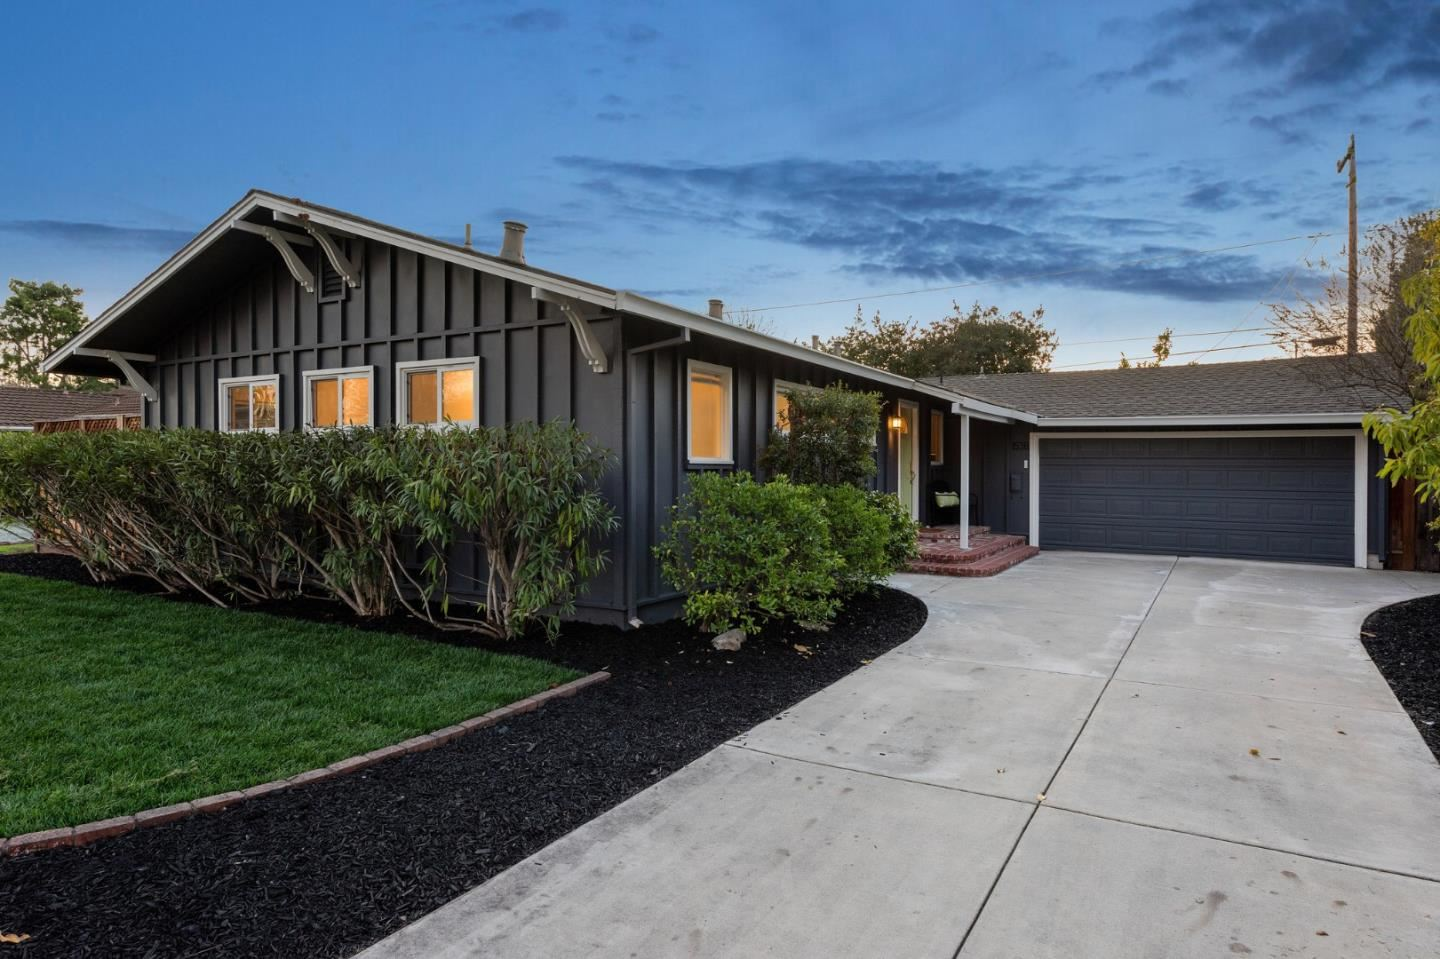 Photo for 1538 Nilda AVE, MOUNTAIN VIEW, CA 94040 (MLS # ML81829980)